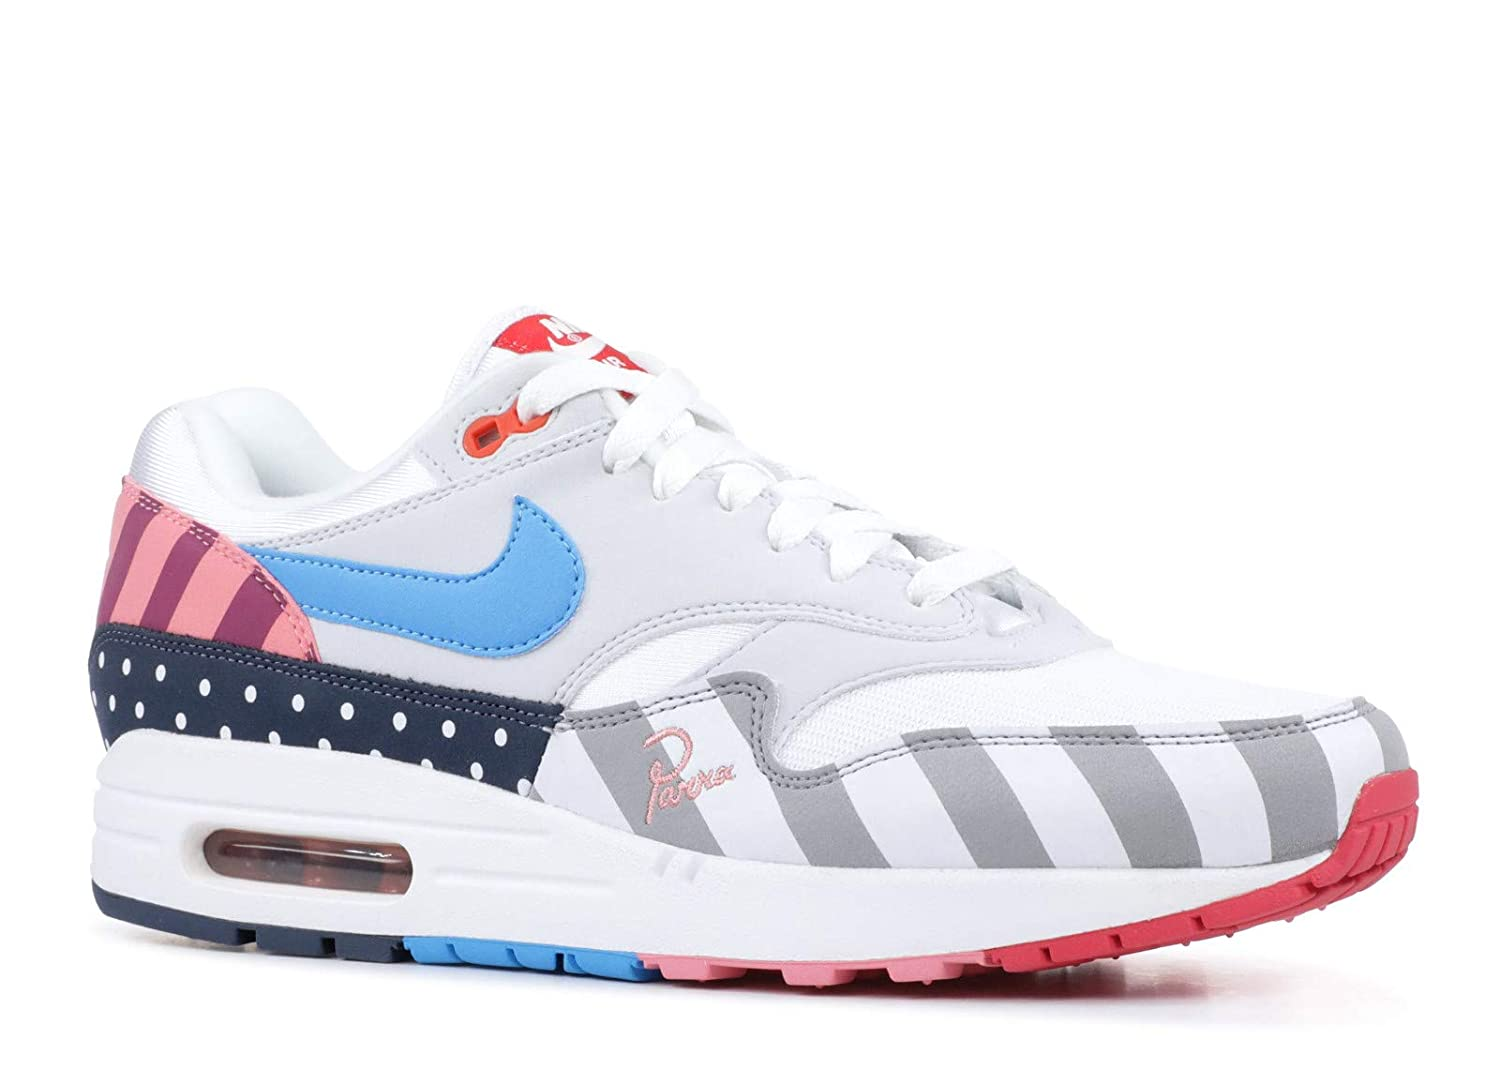 promo code 6ab7c 6e38f Amazon.com | Nike Air Max 1 Parra - US 10.5 White/Pure ...